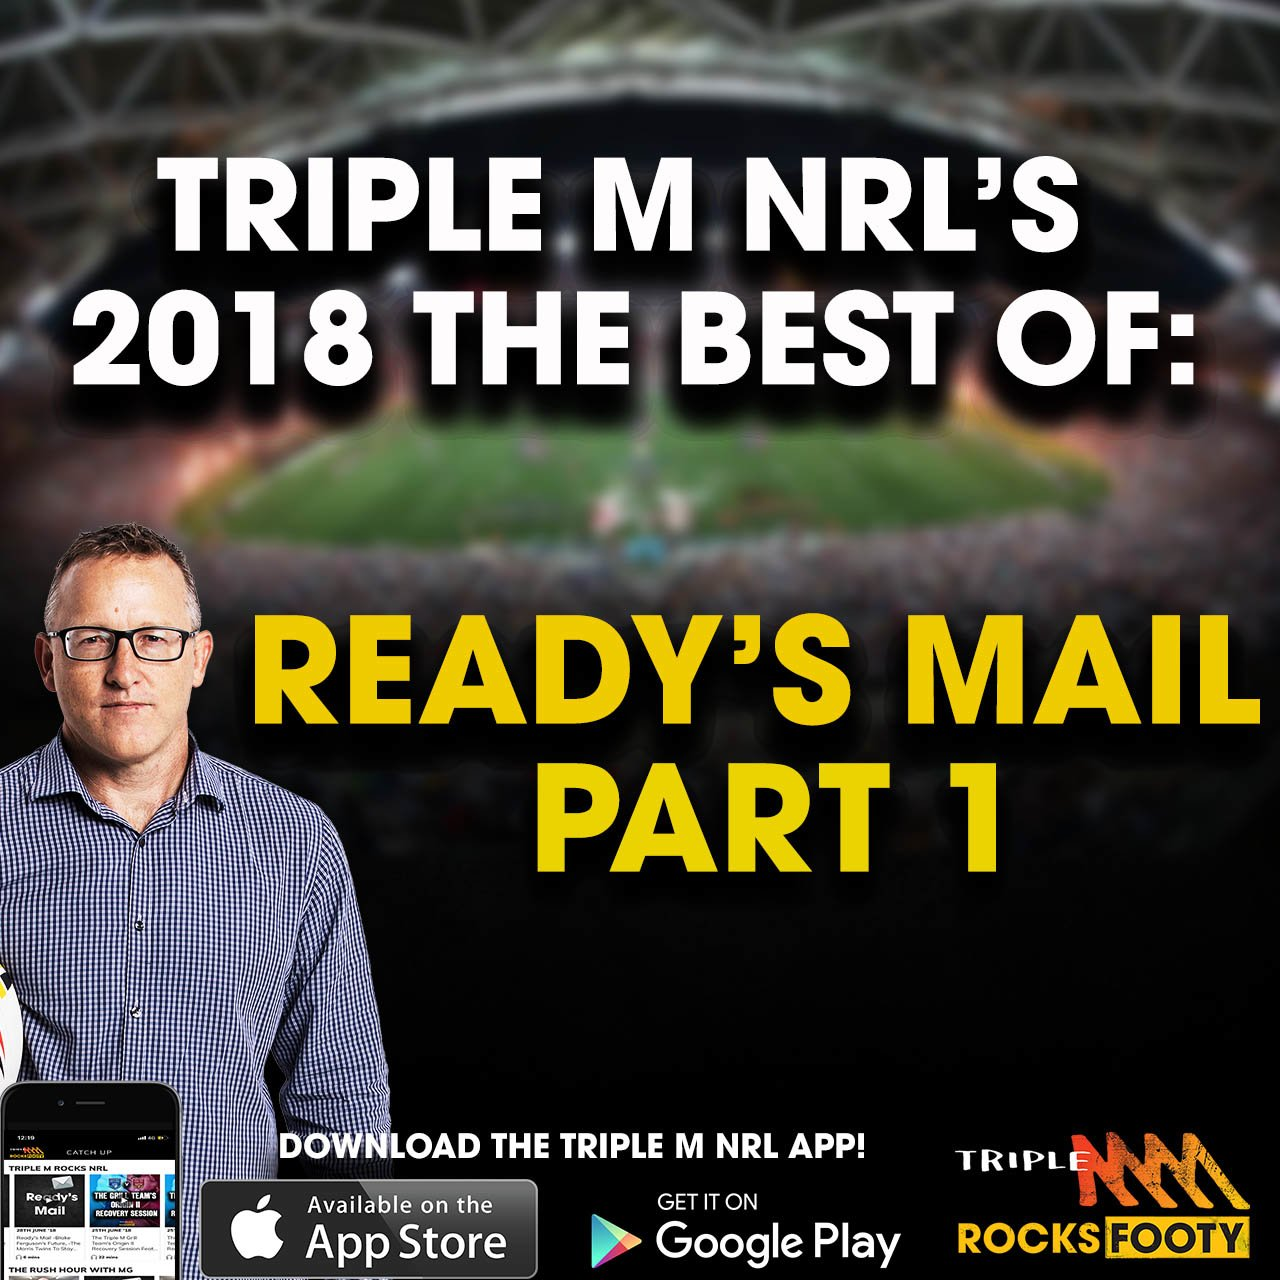 Triple M NRL's 2018 Best Of: Ready's Mail Part One